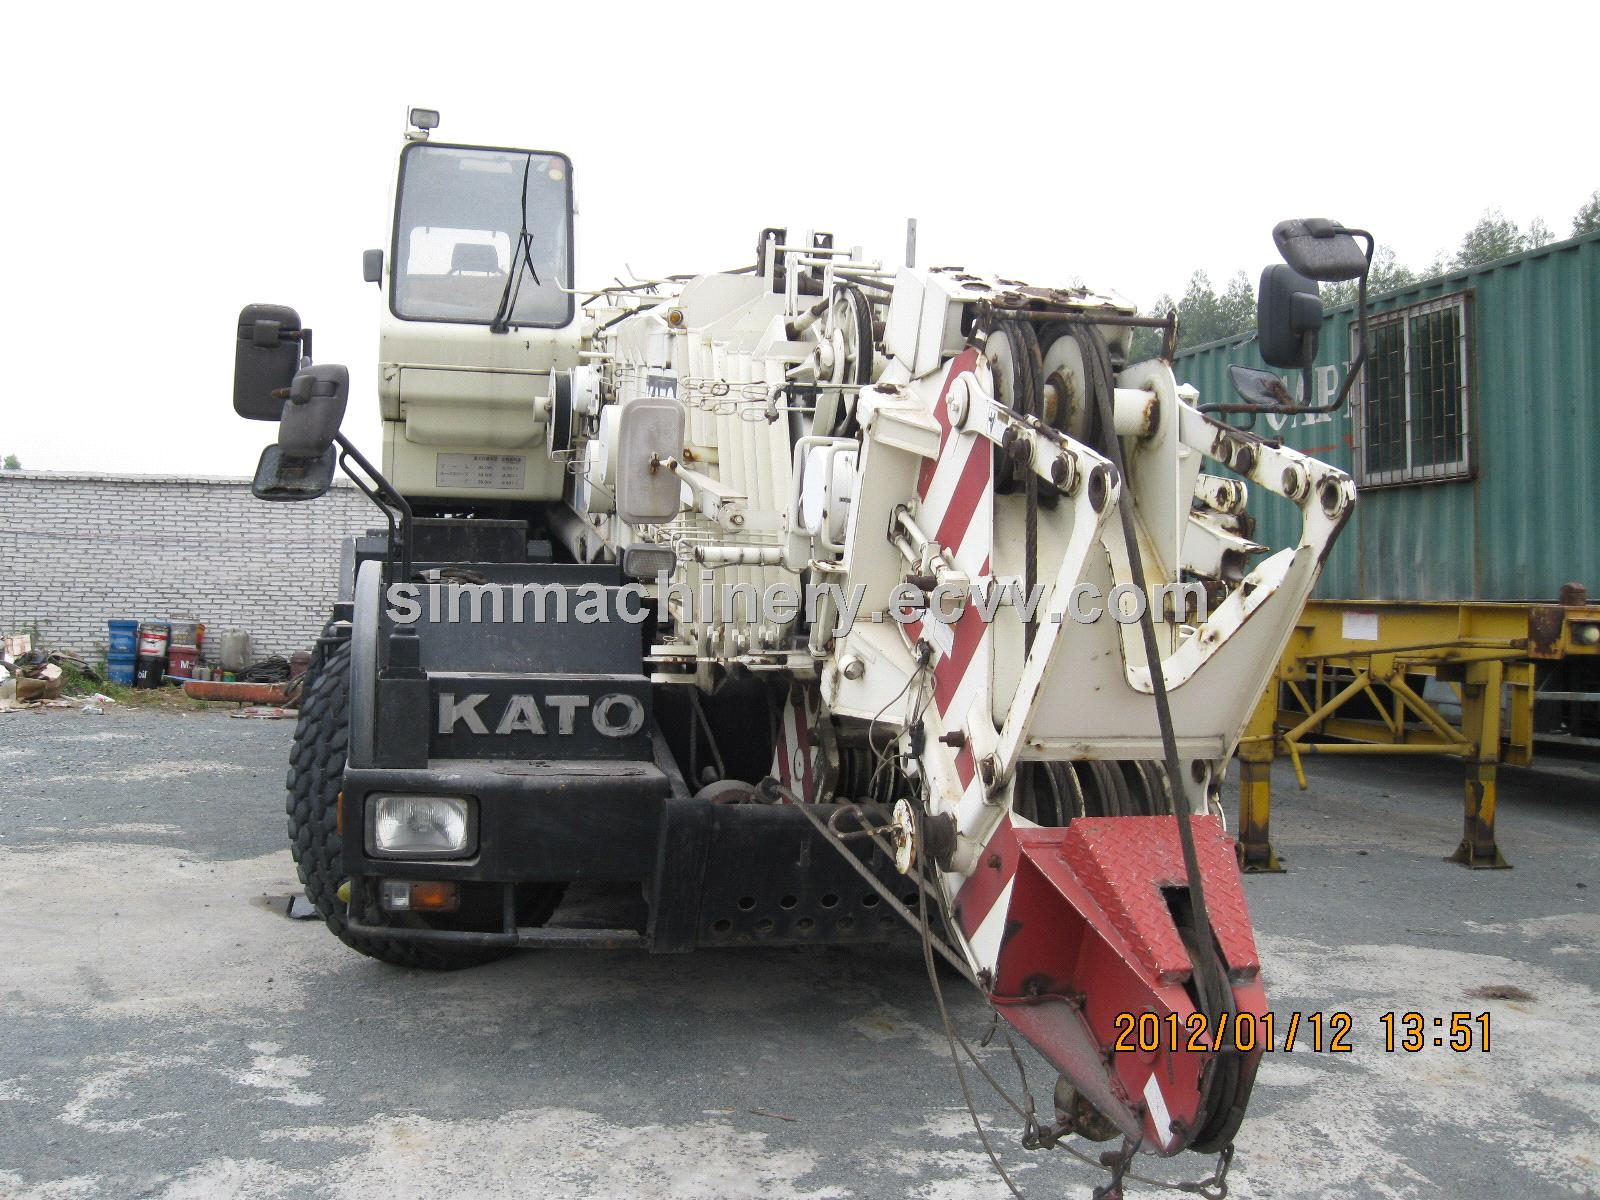 Kato 70t Rough Terrain Crane Load Chart : Japan made kato kr t rough crane purchasing souring